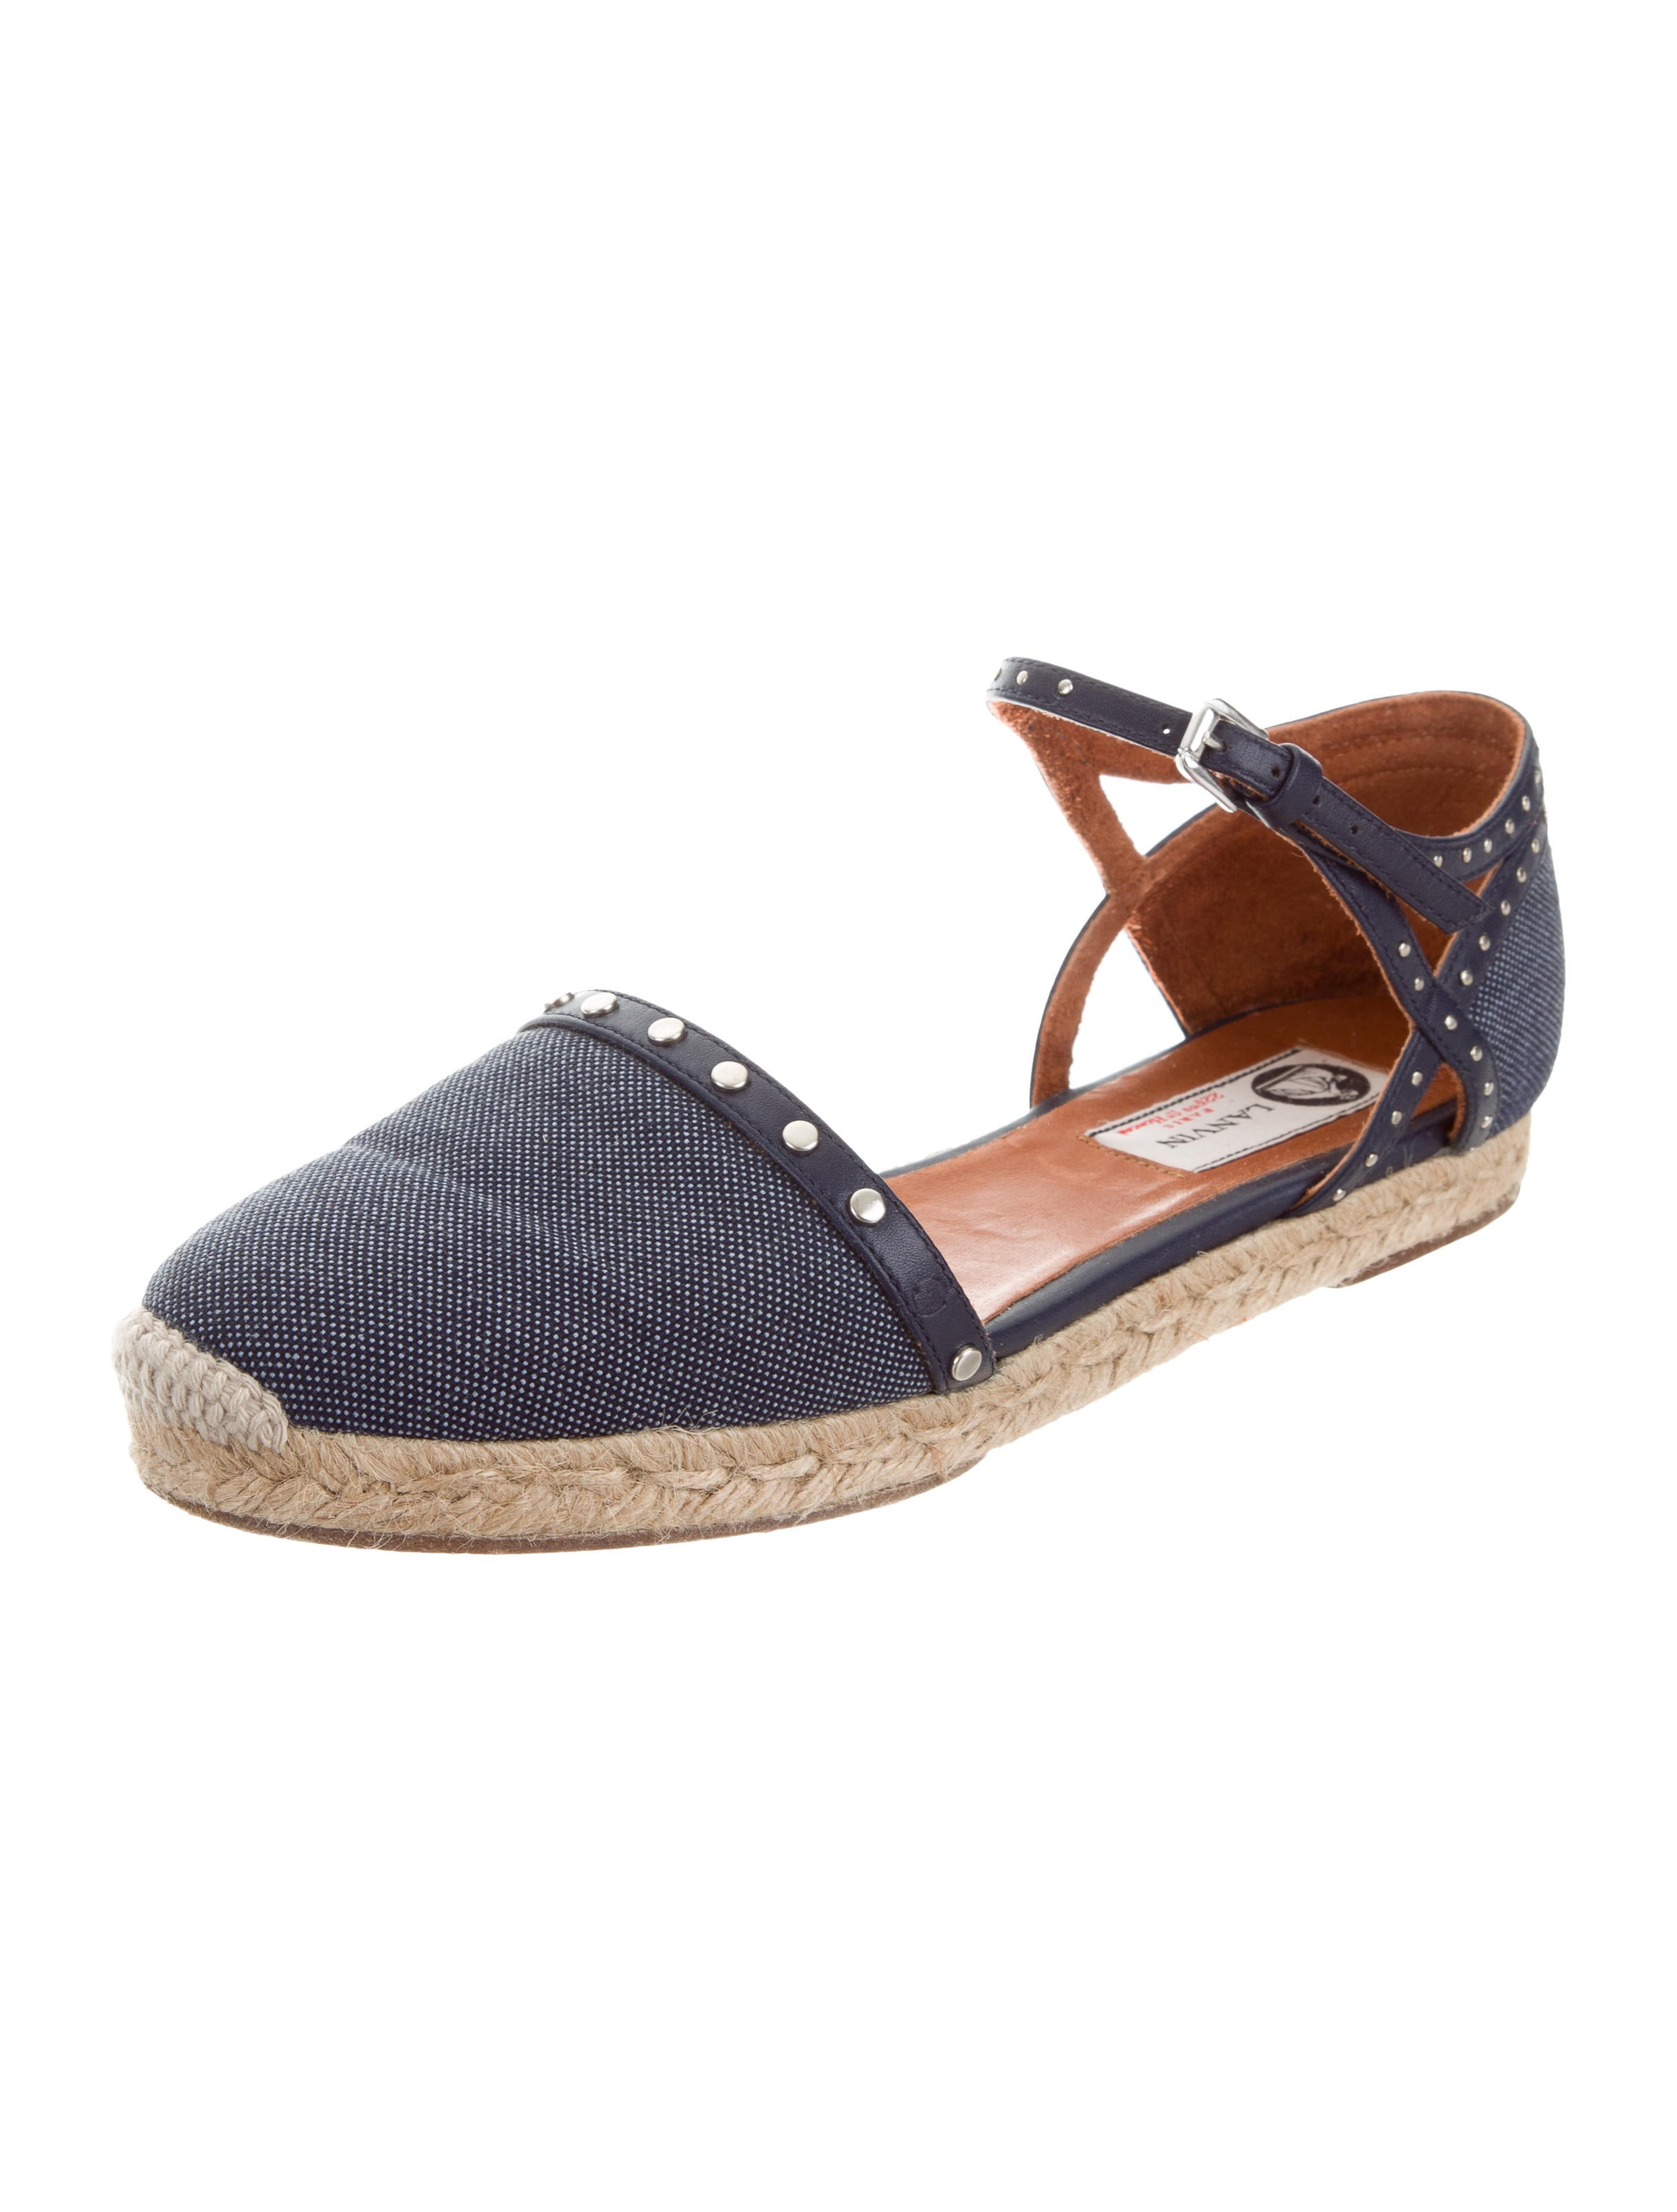 Lanvin Leather-Trimmed d'Orsay Espadrilles official site cheap price A1mNQiScCu